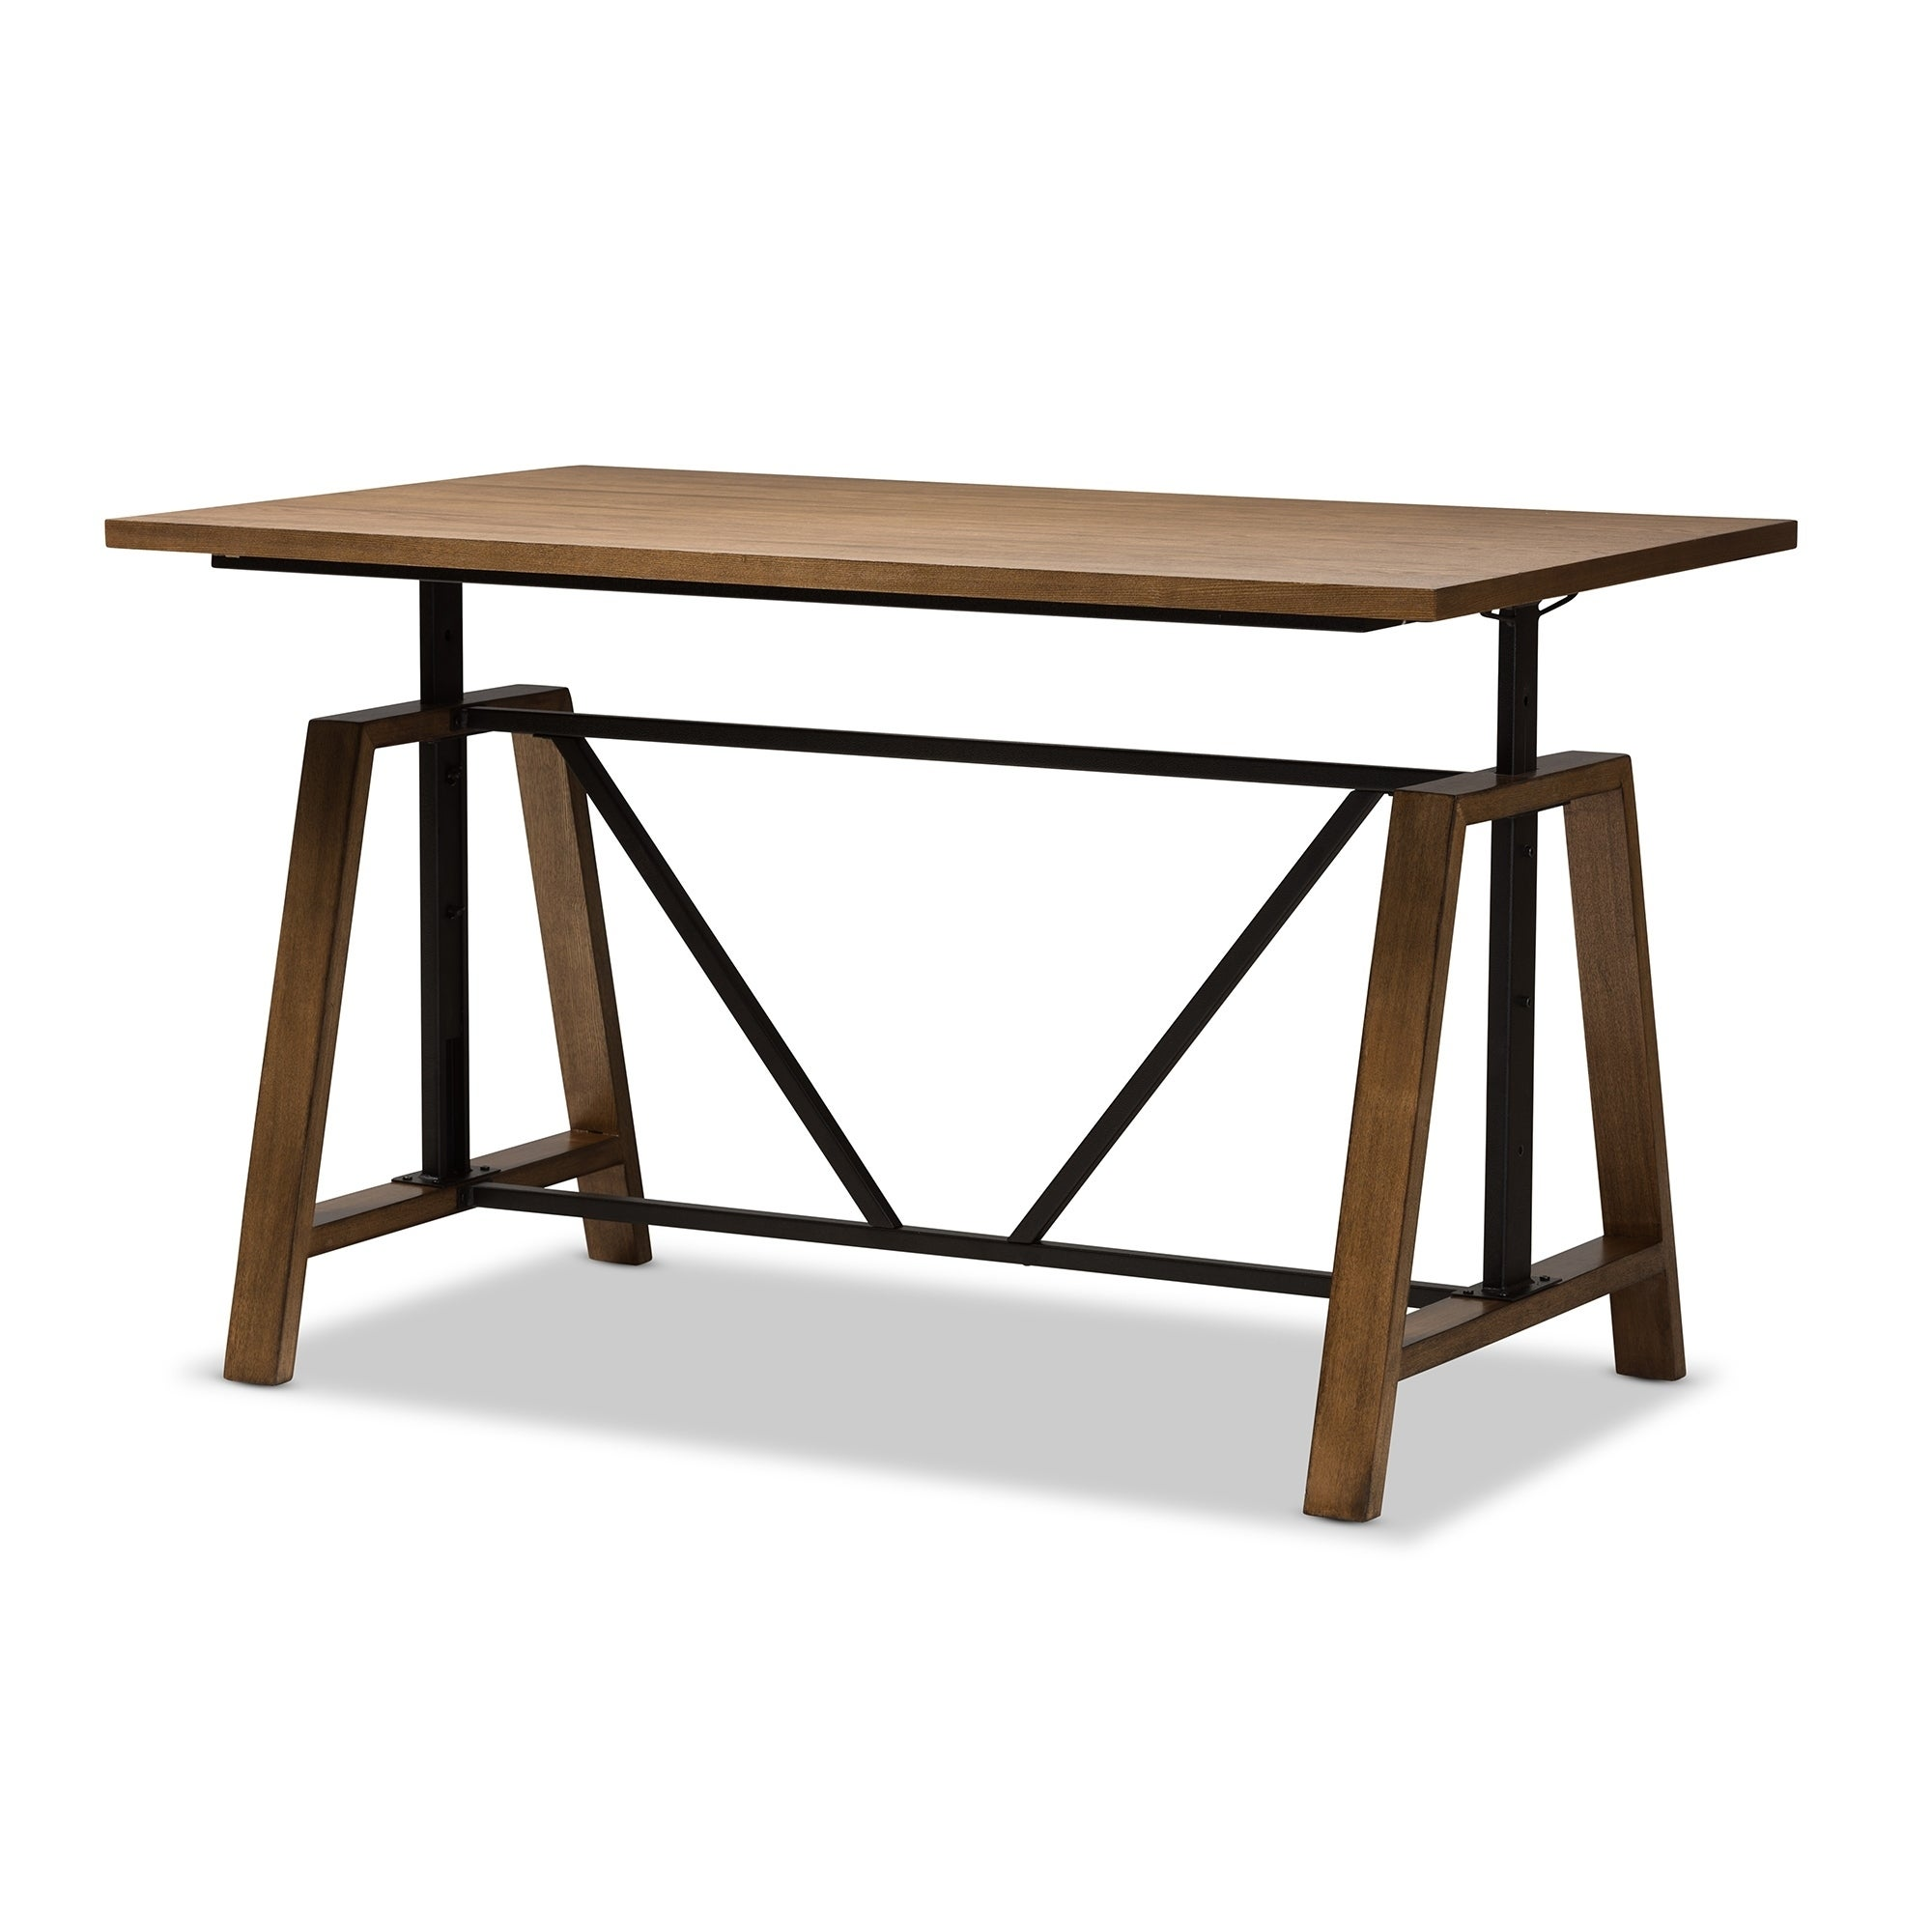 Bon Shop Rustic Industrial Metal And Wood Adjustable Desk By Baxton Studio    Free Shipping Today   Overstock.com   17974378